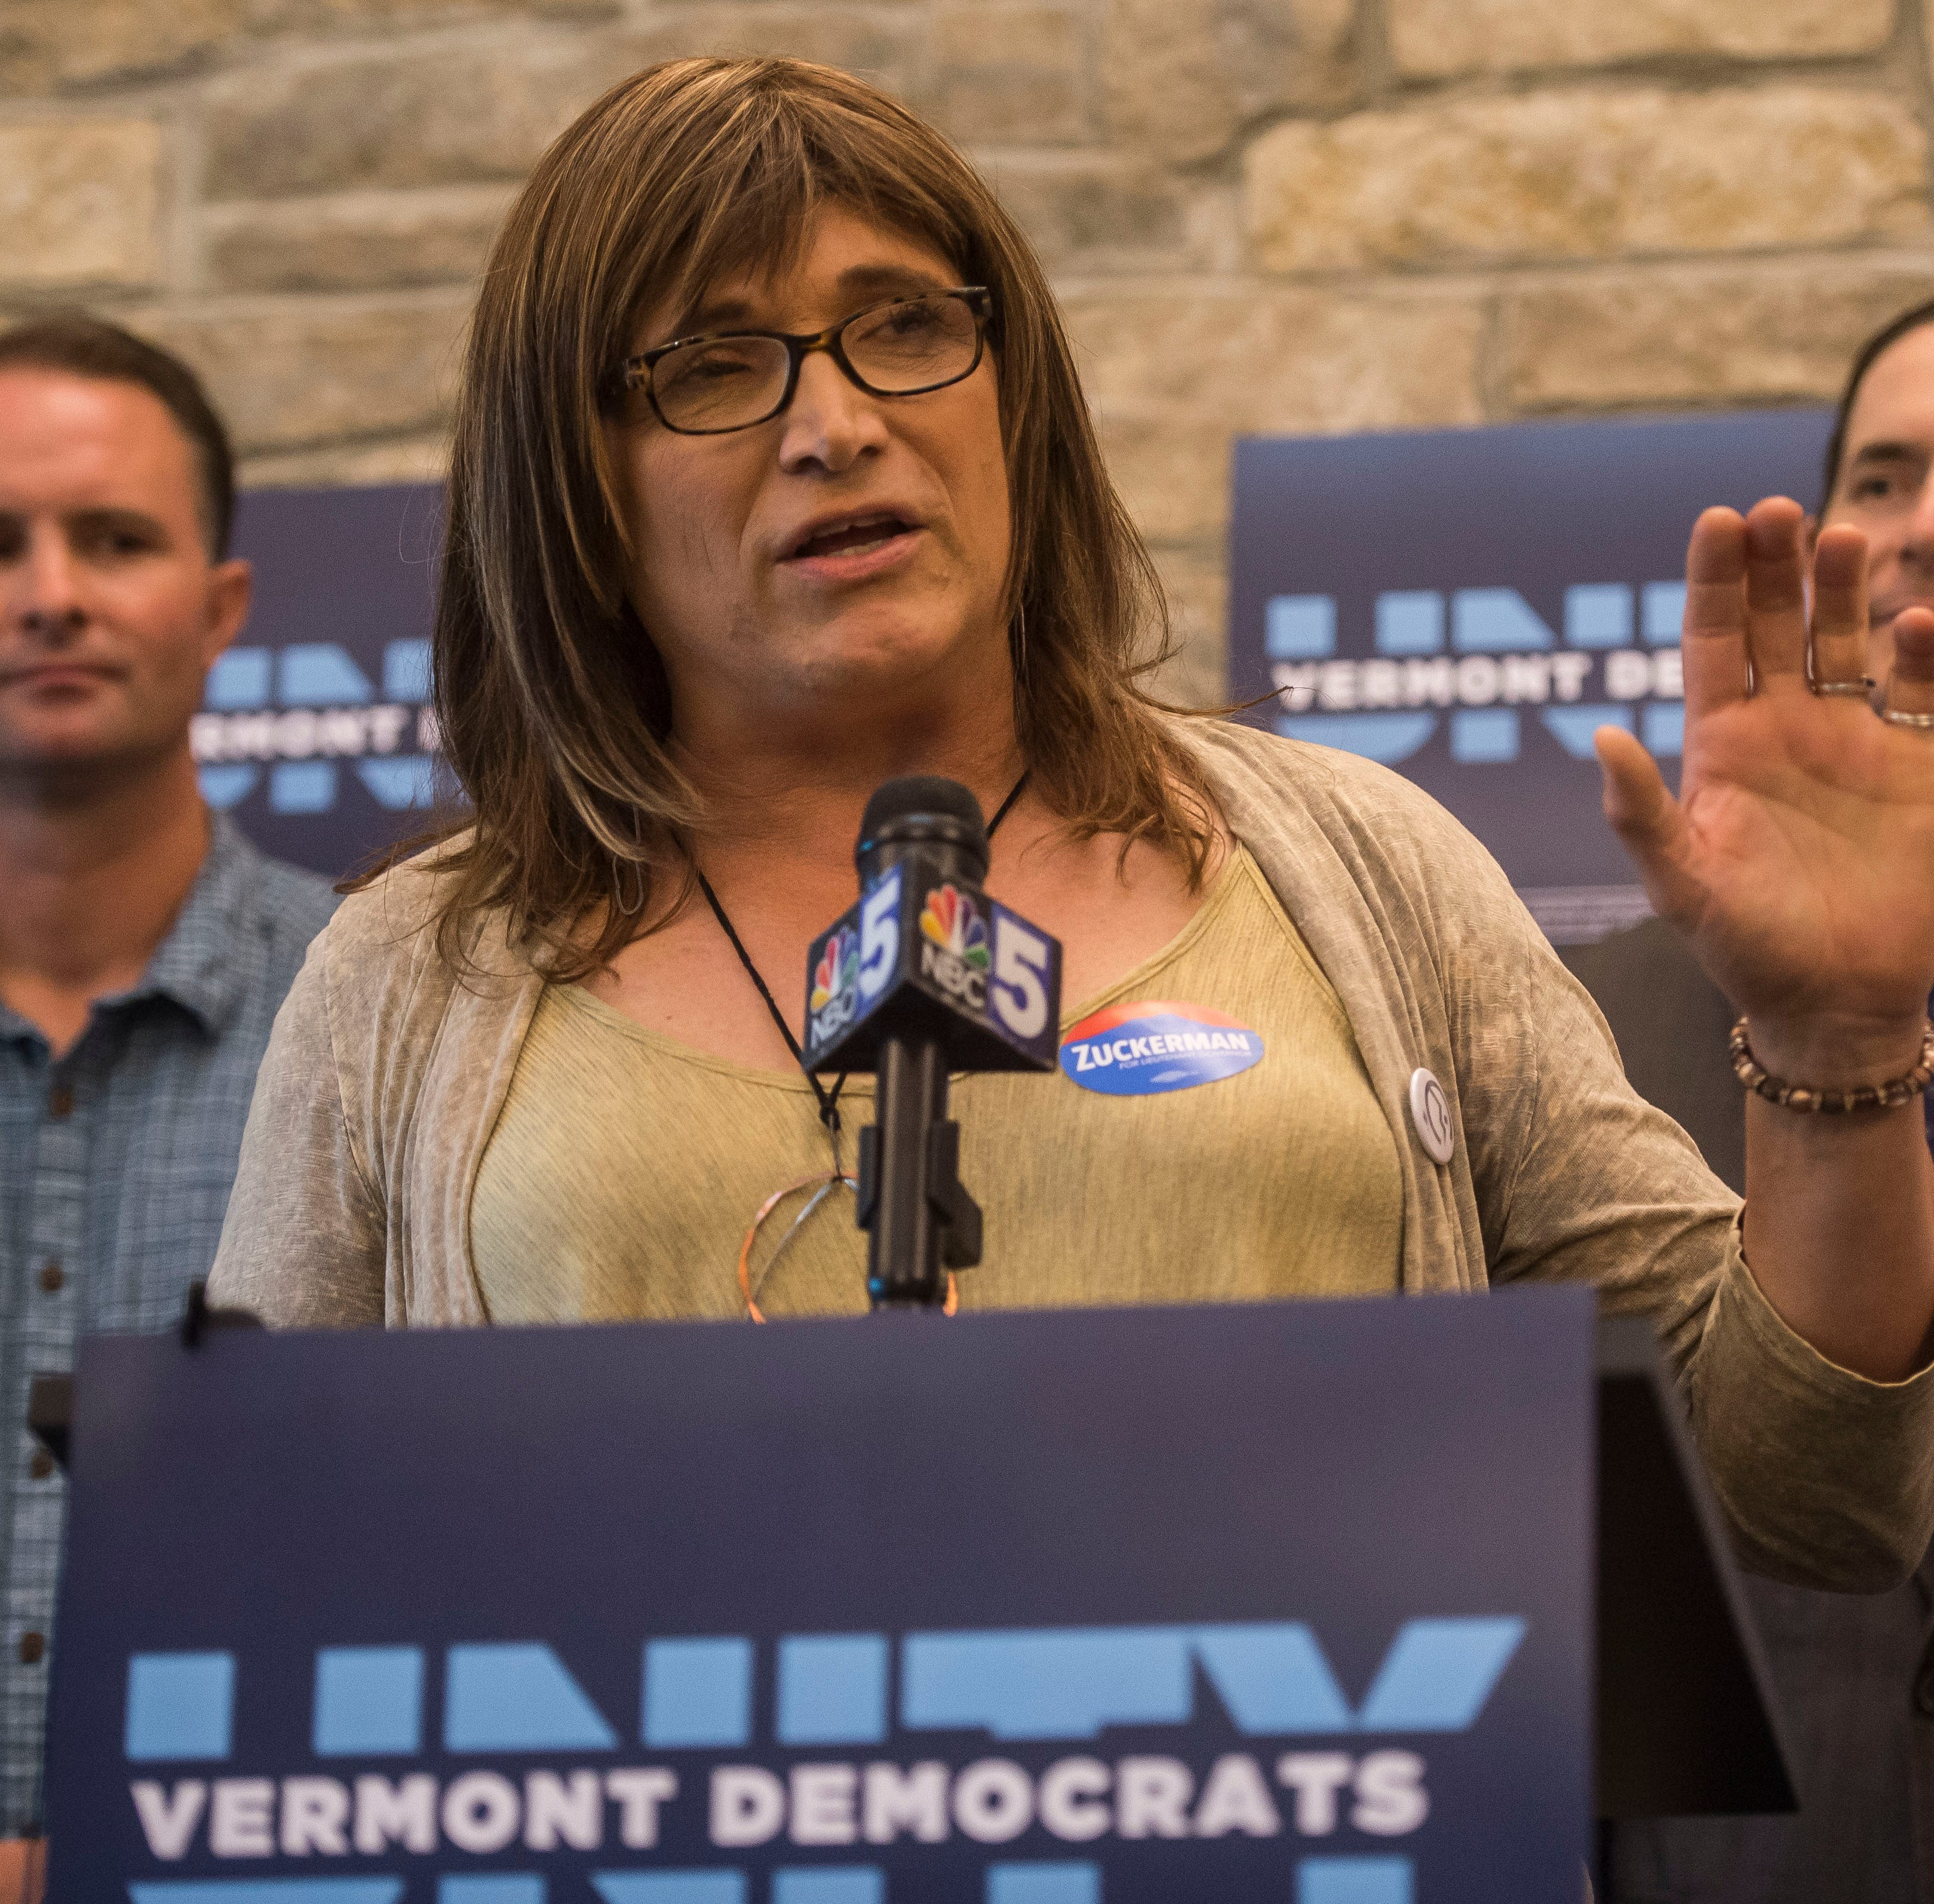 VT Insights: Hallquist, Democrats stumble over message